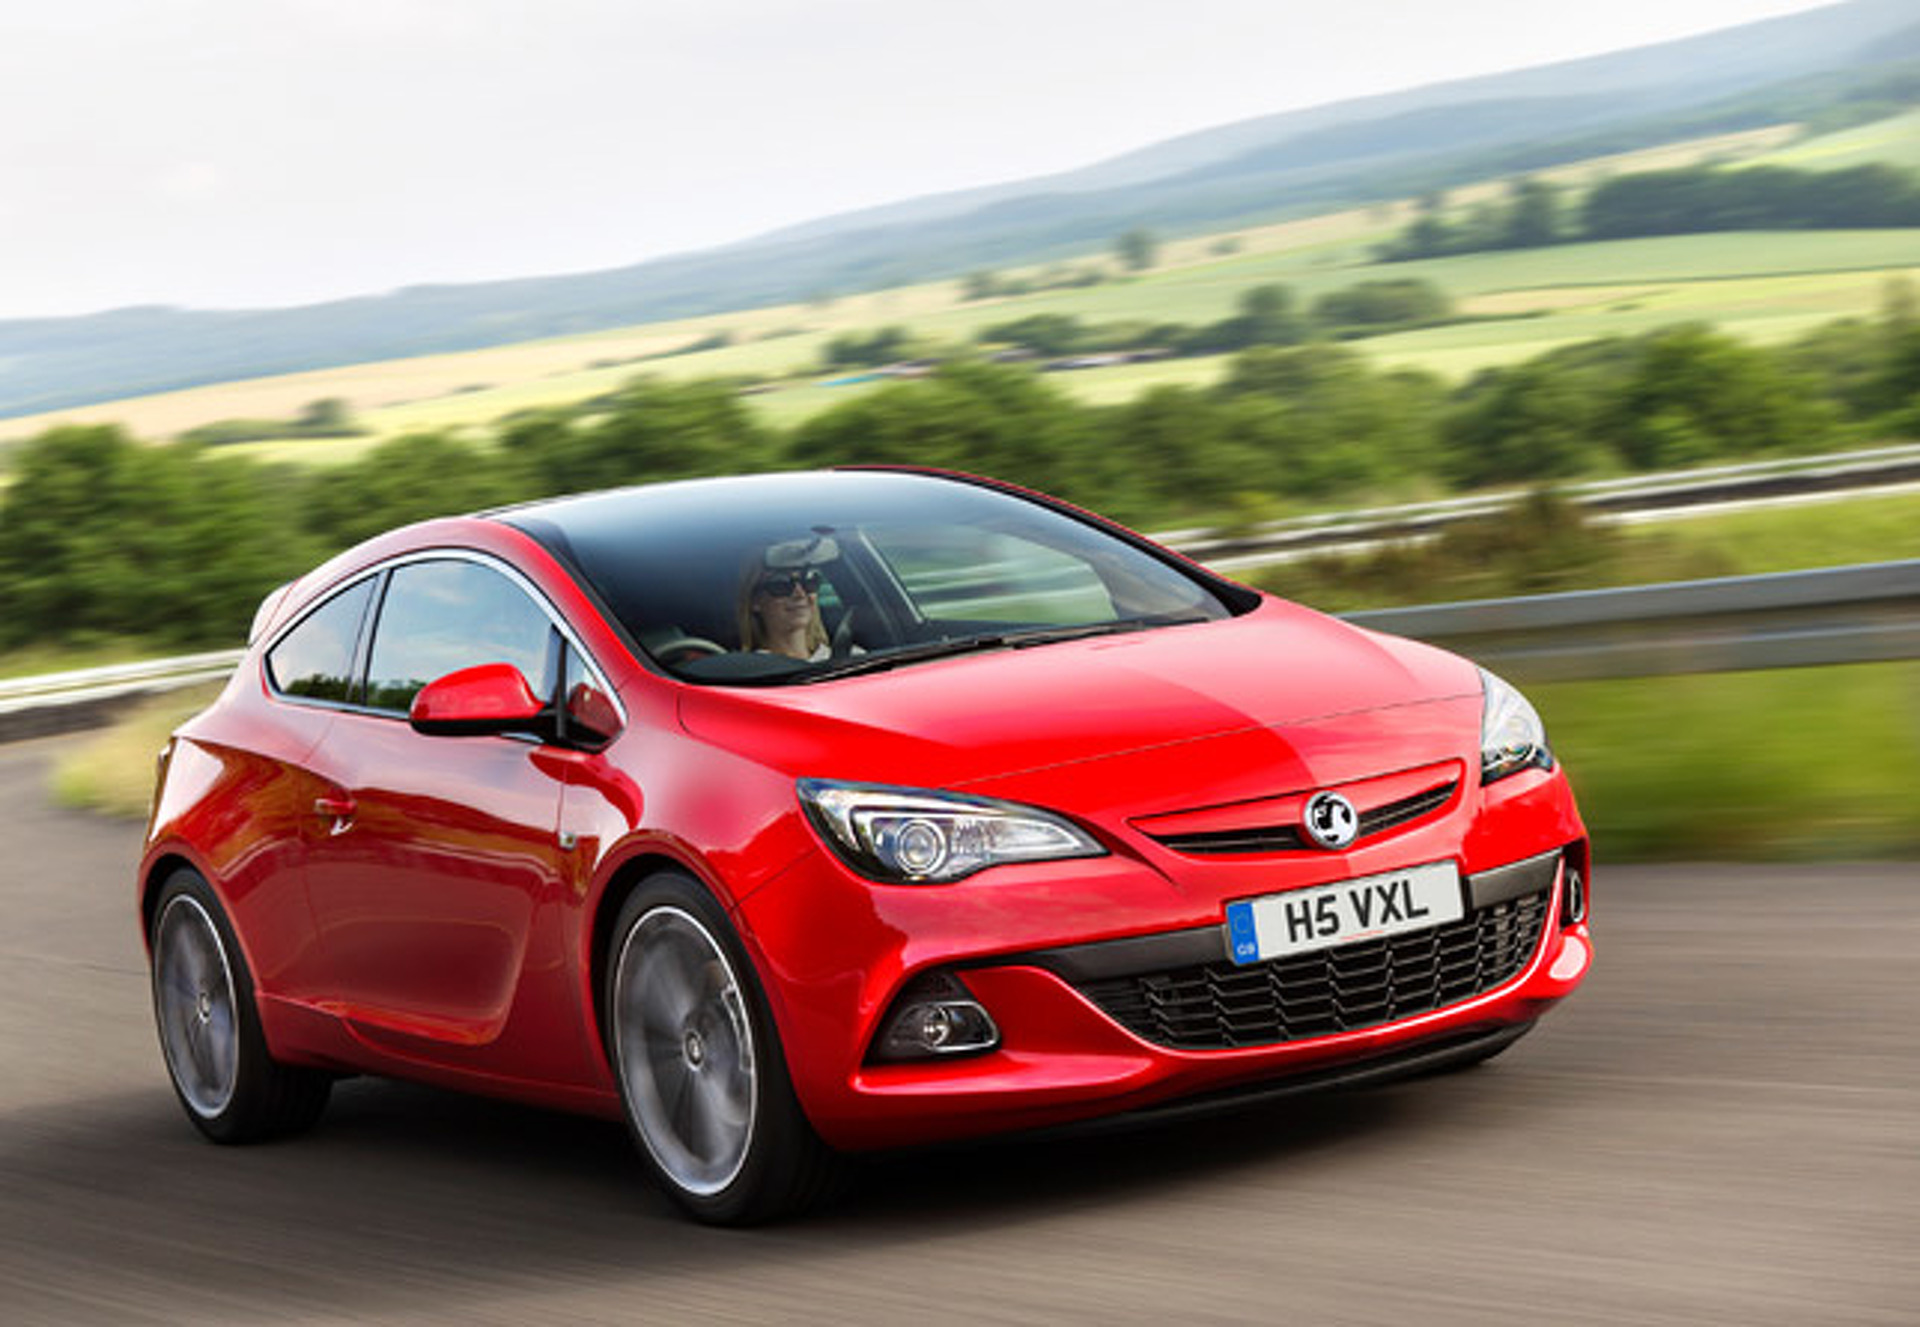 Unveiled: Vauxhall Astra GTC Turbodiesel